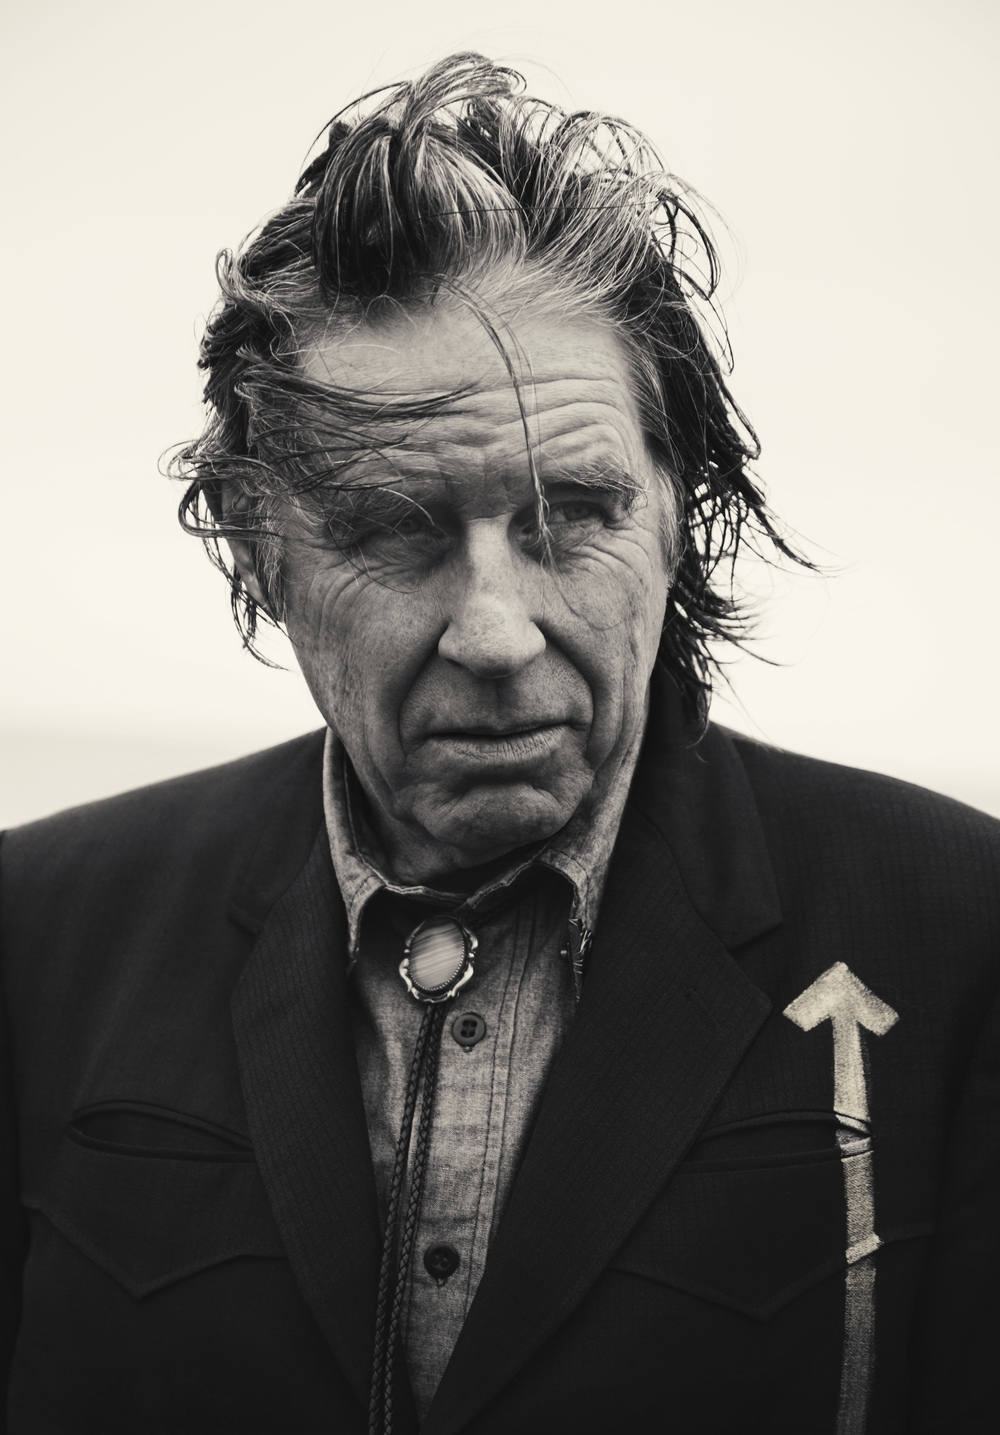 JOHN DOE PHOTOGRAPHED BY JIM HERRINGTON